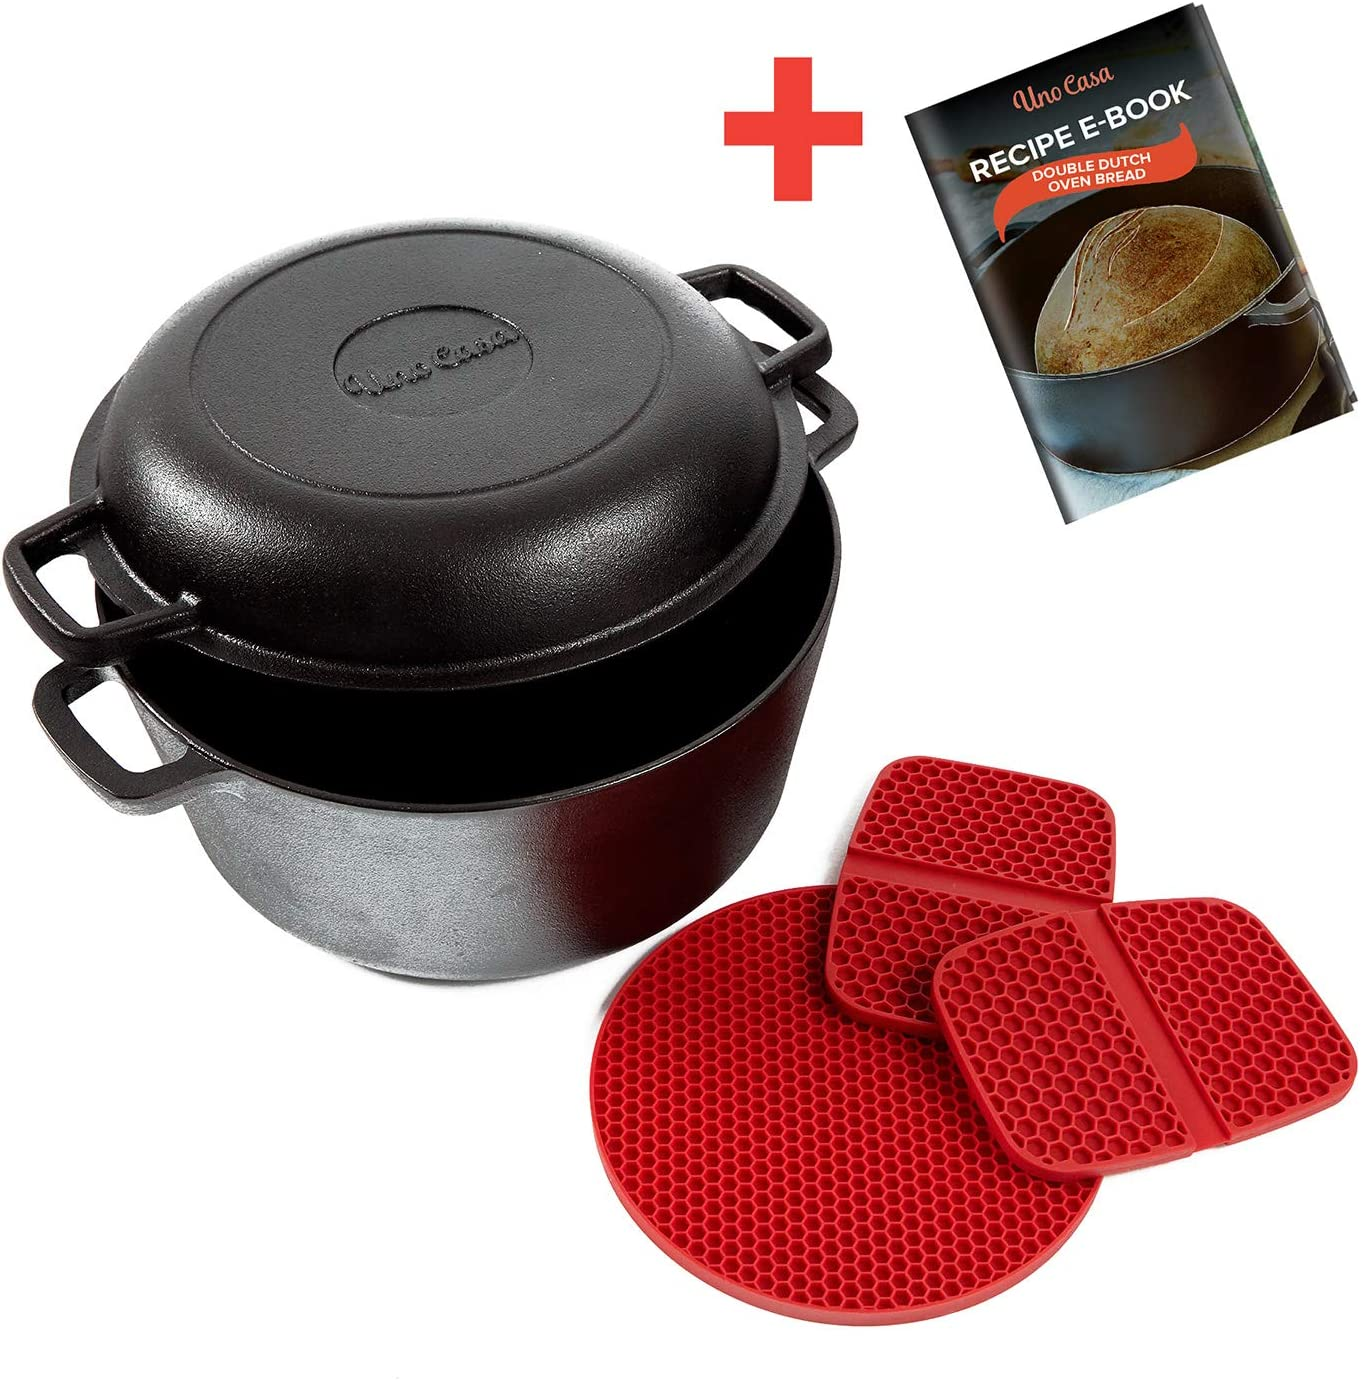 Overmont Dutch Oven Cast Iron Casserole Pot 5 QT Dual Function Lid Griddle Skillet Pre Seasoned with Handle Covers Stand for Camping Home Cooking BBQ Baking